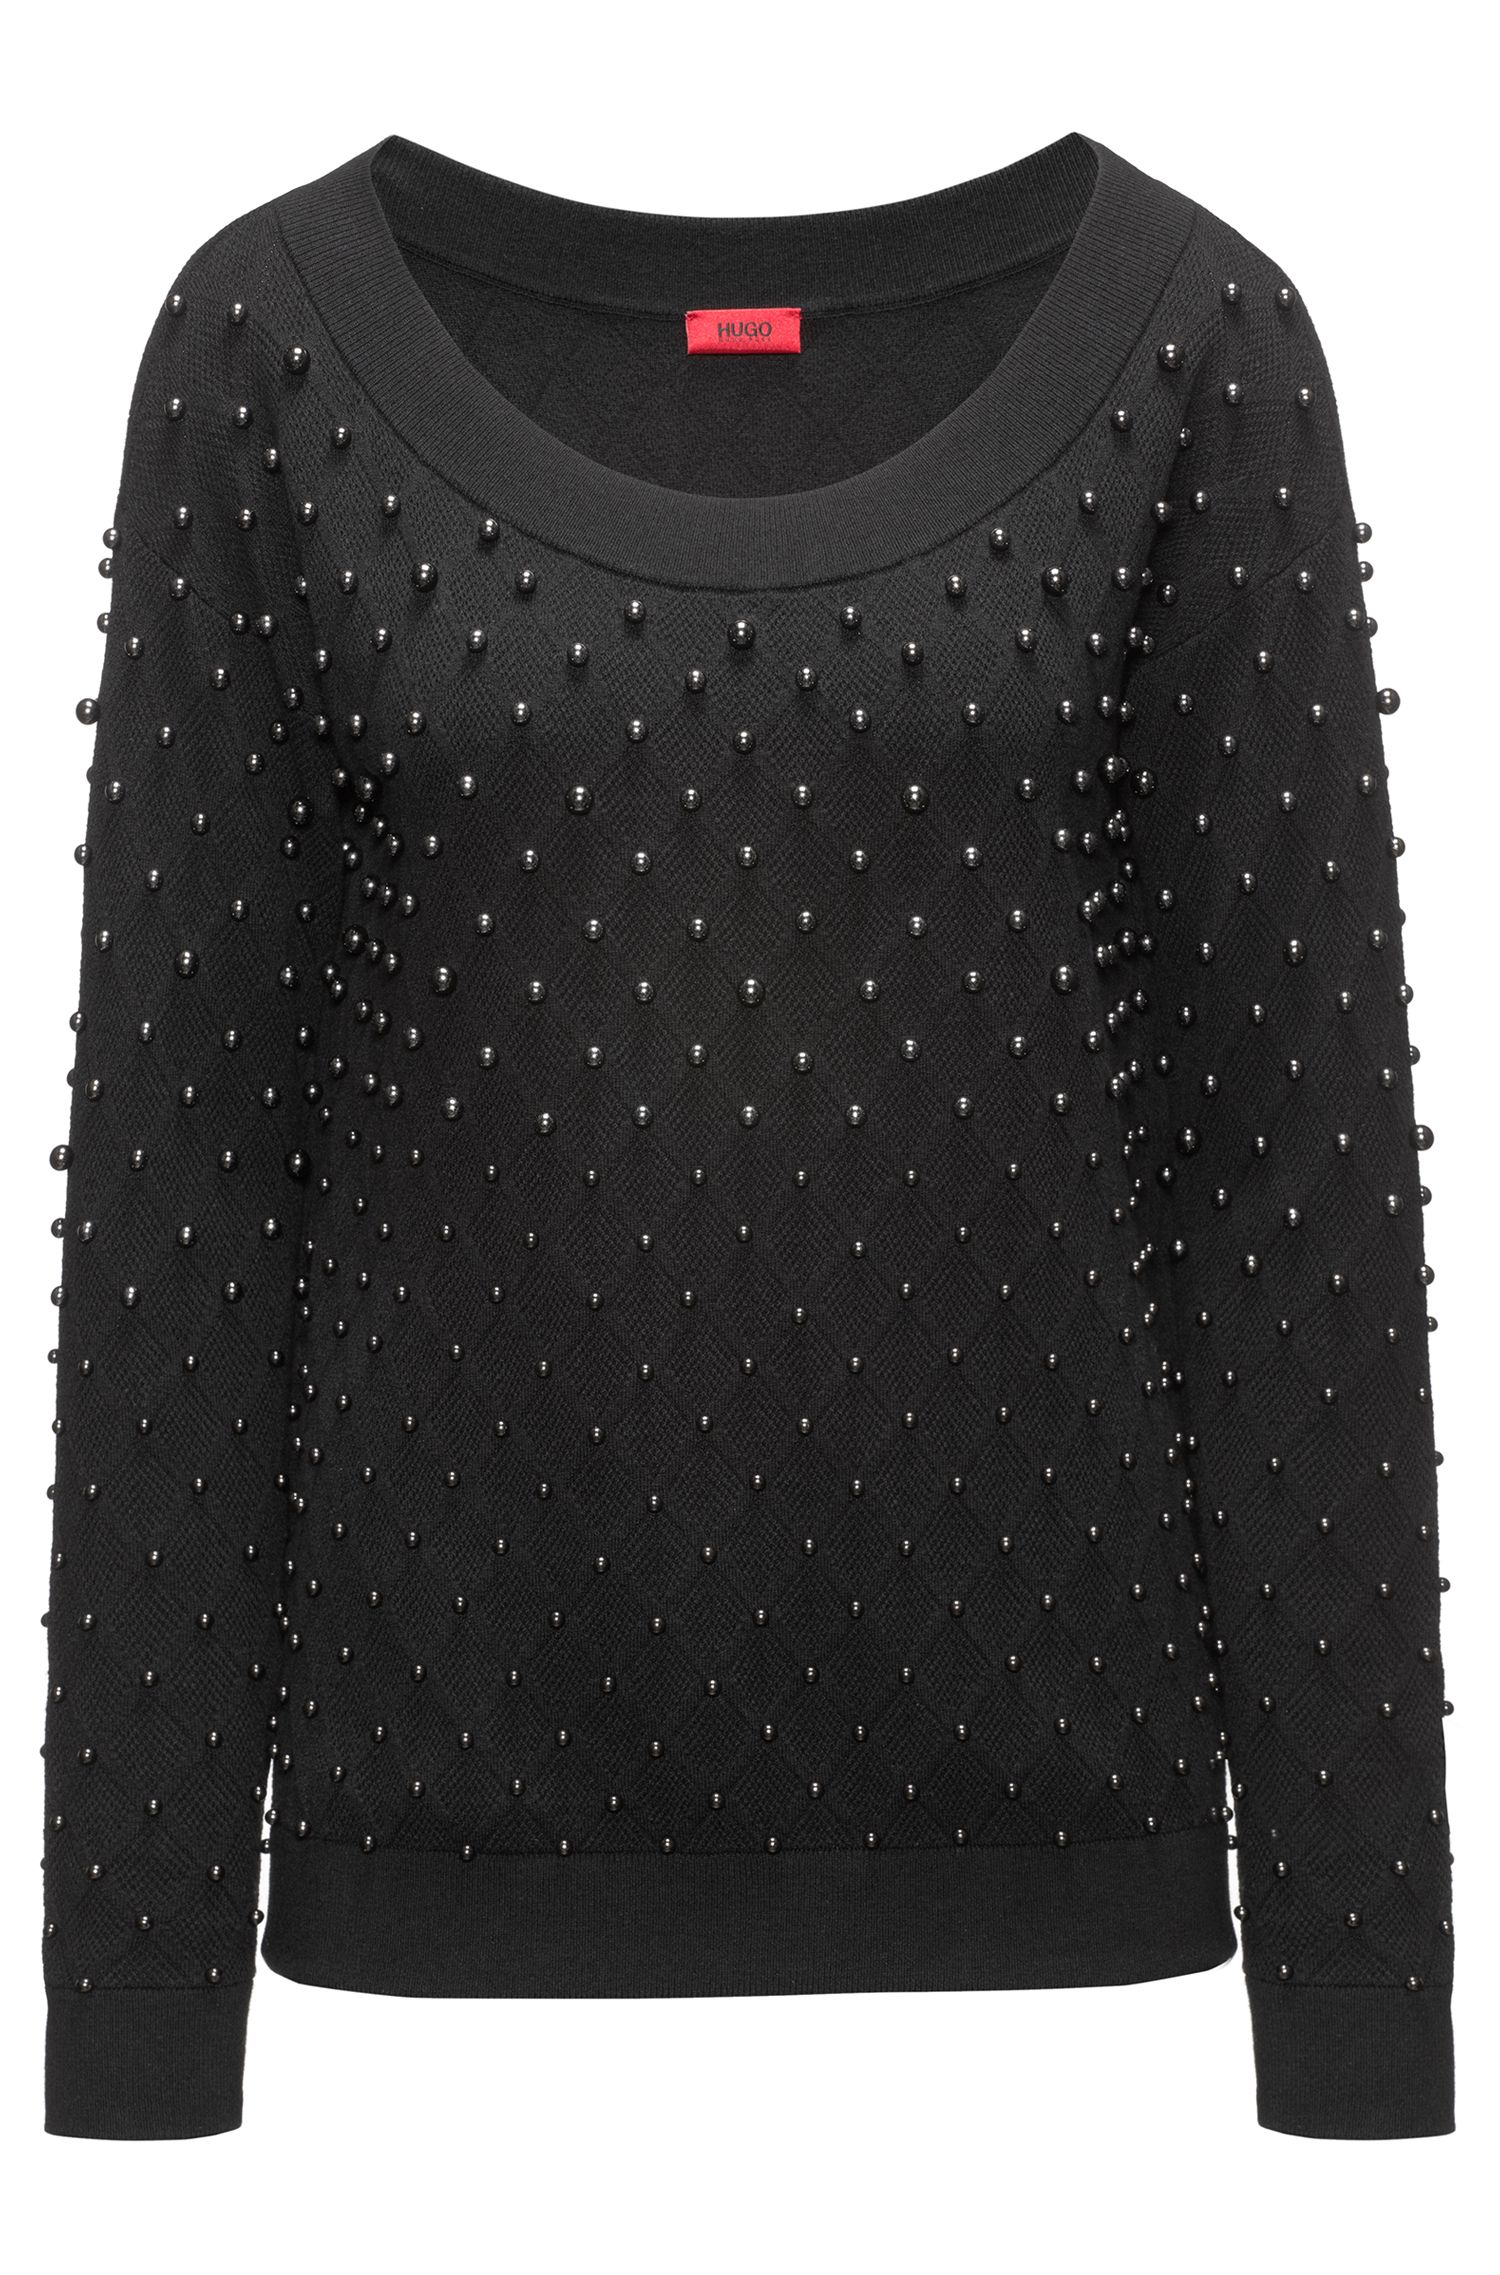 Embellished sweater with stretch neckline